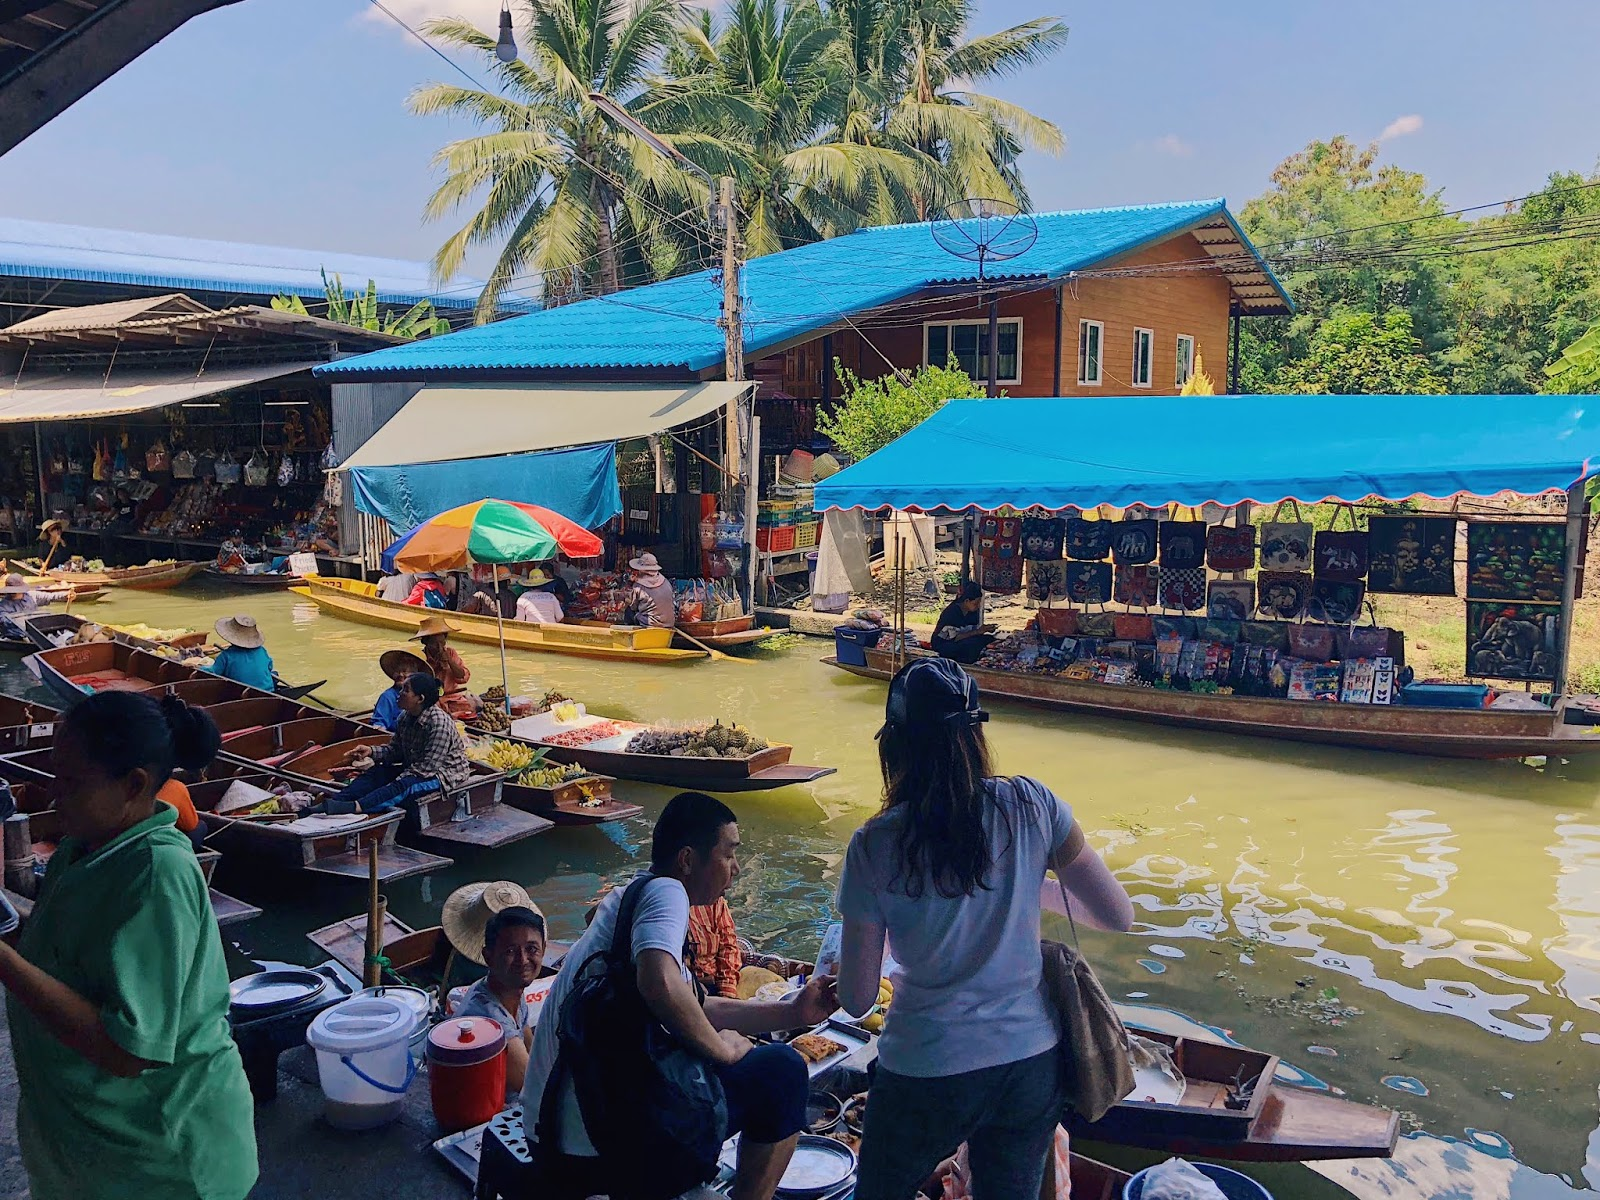 Vendors at Damnoen Saduak Floating Market